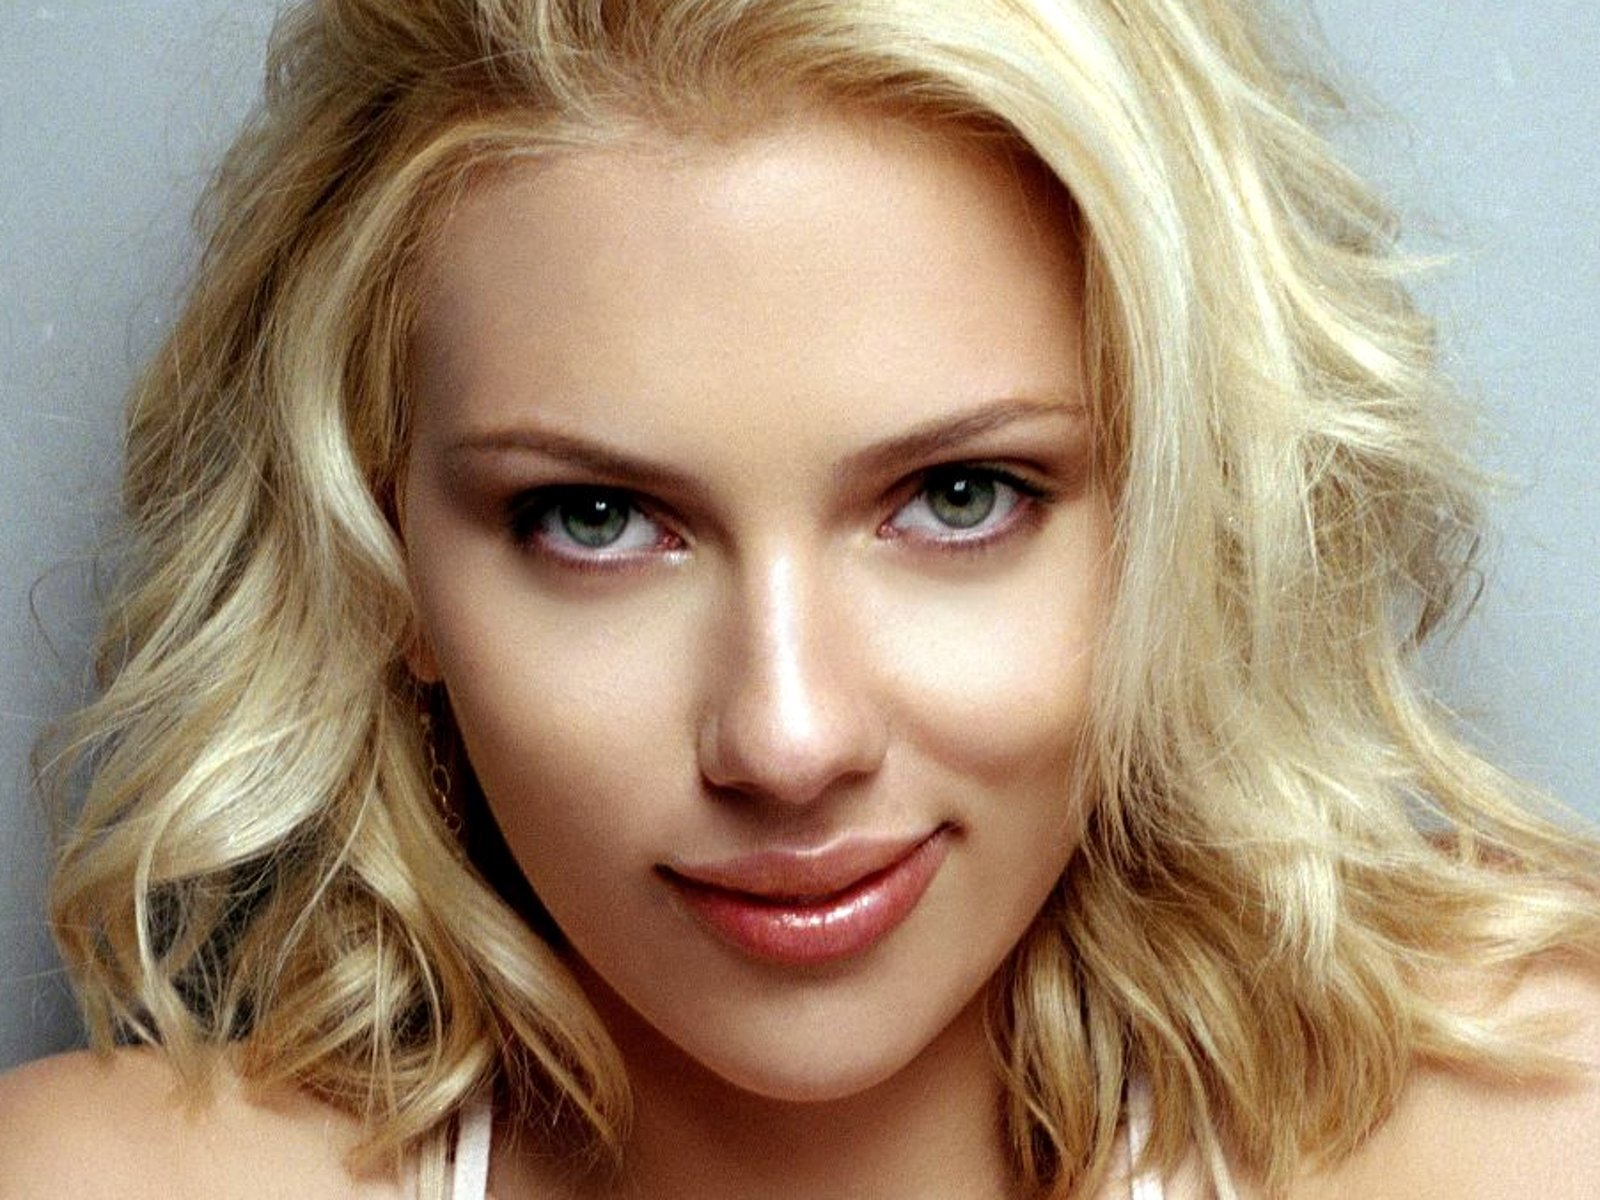 Free Actress Wallpaper: Scarlett Johansson hot, scarlett ...